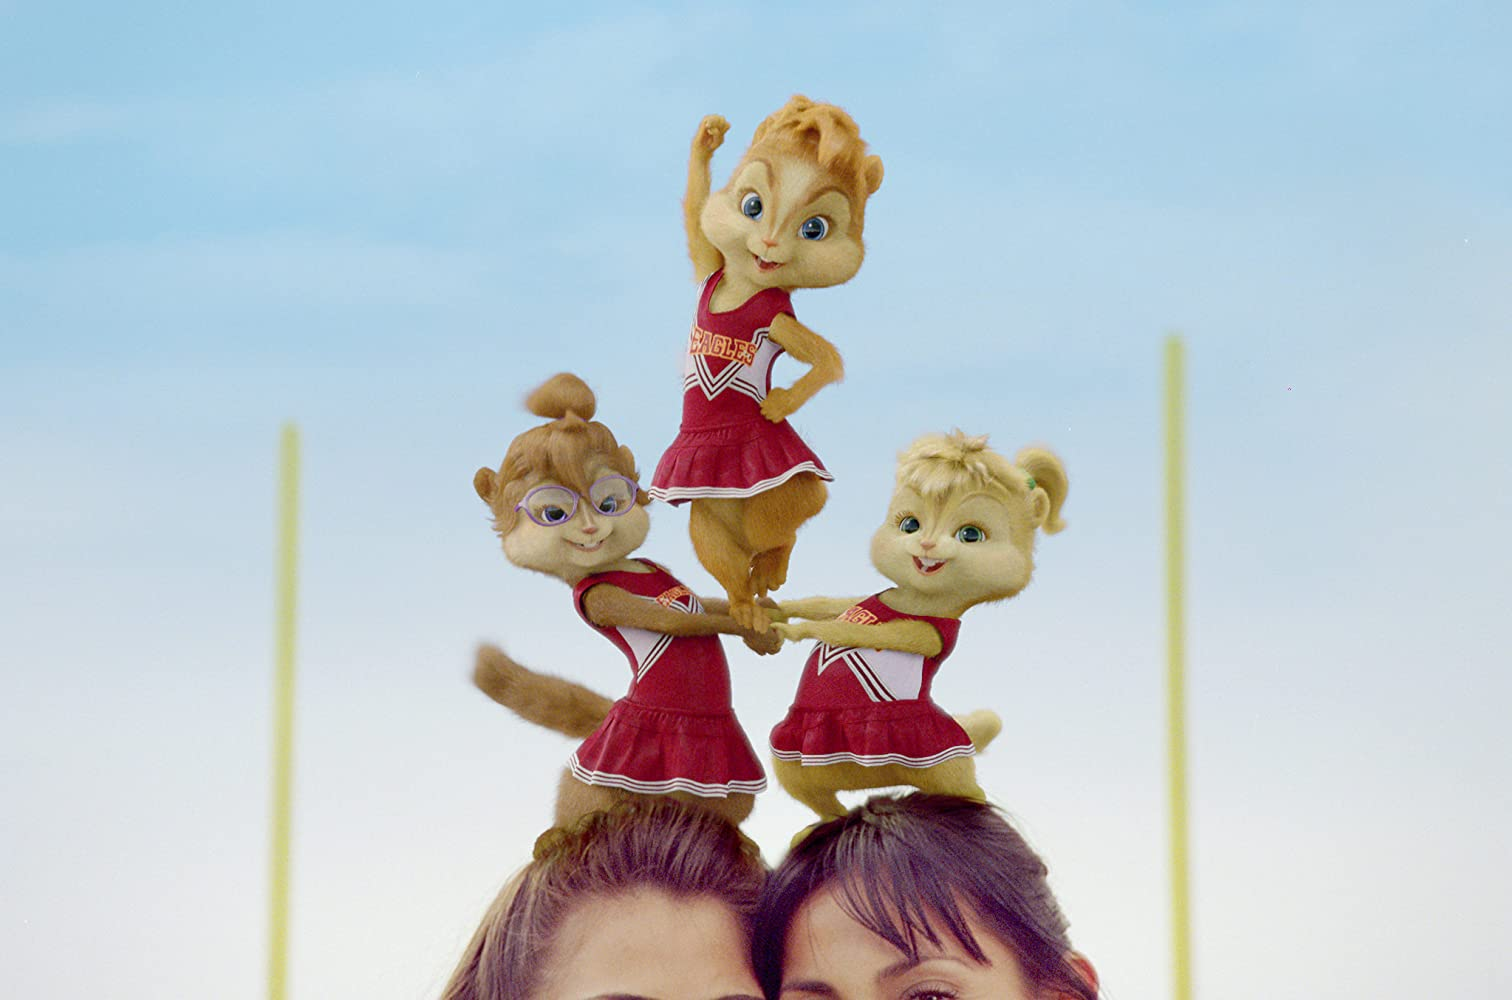 Christina Applegate, Anna Faris, and Amy Poehler in Alvin and the Chipmunks: The Squeakquel (2009)